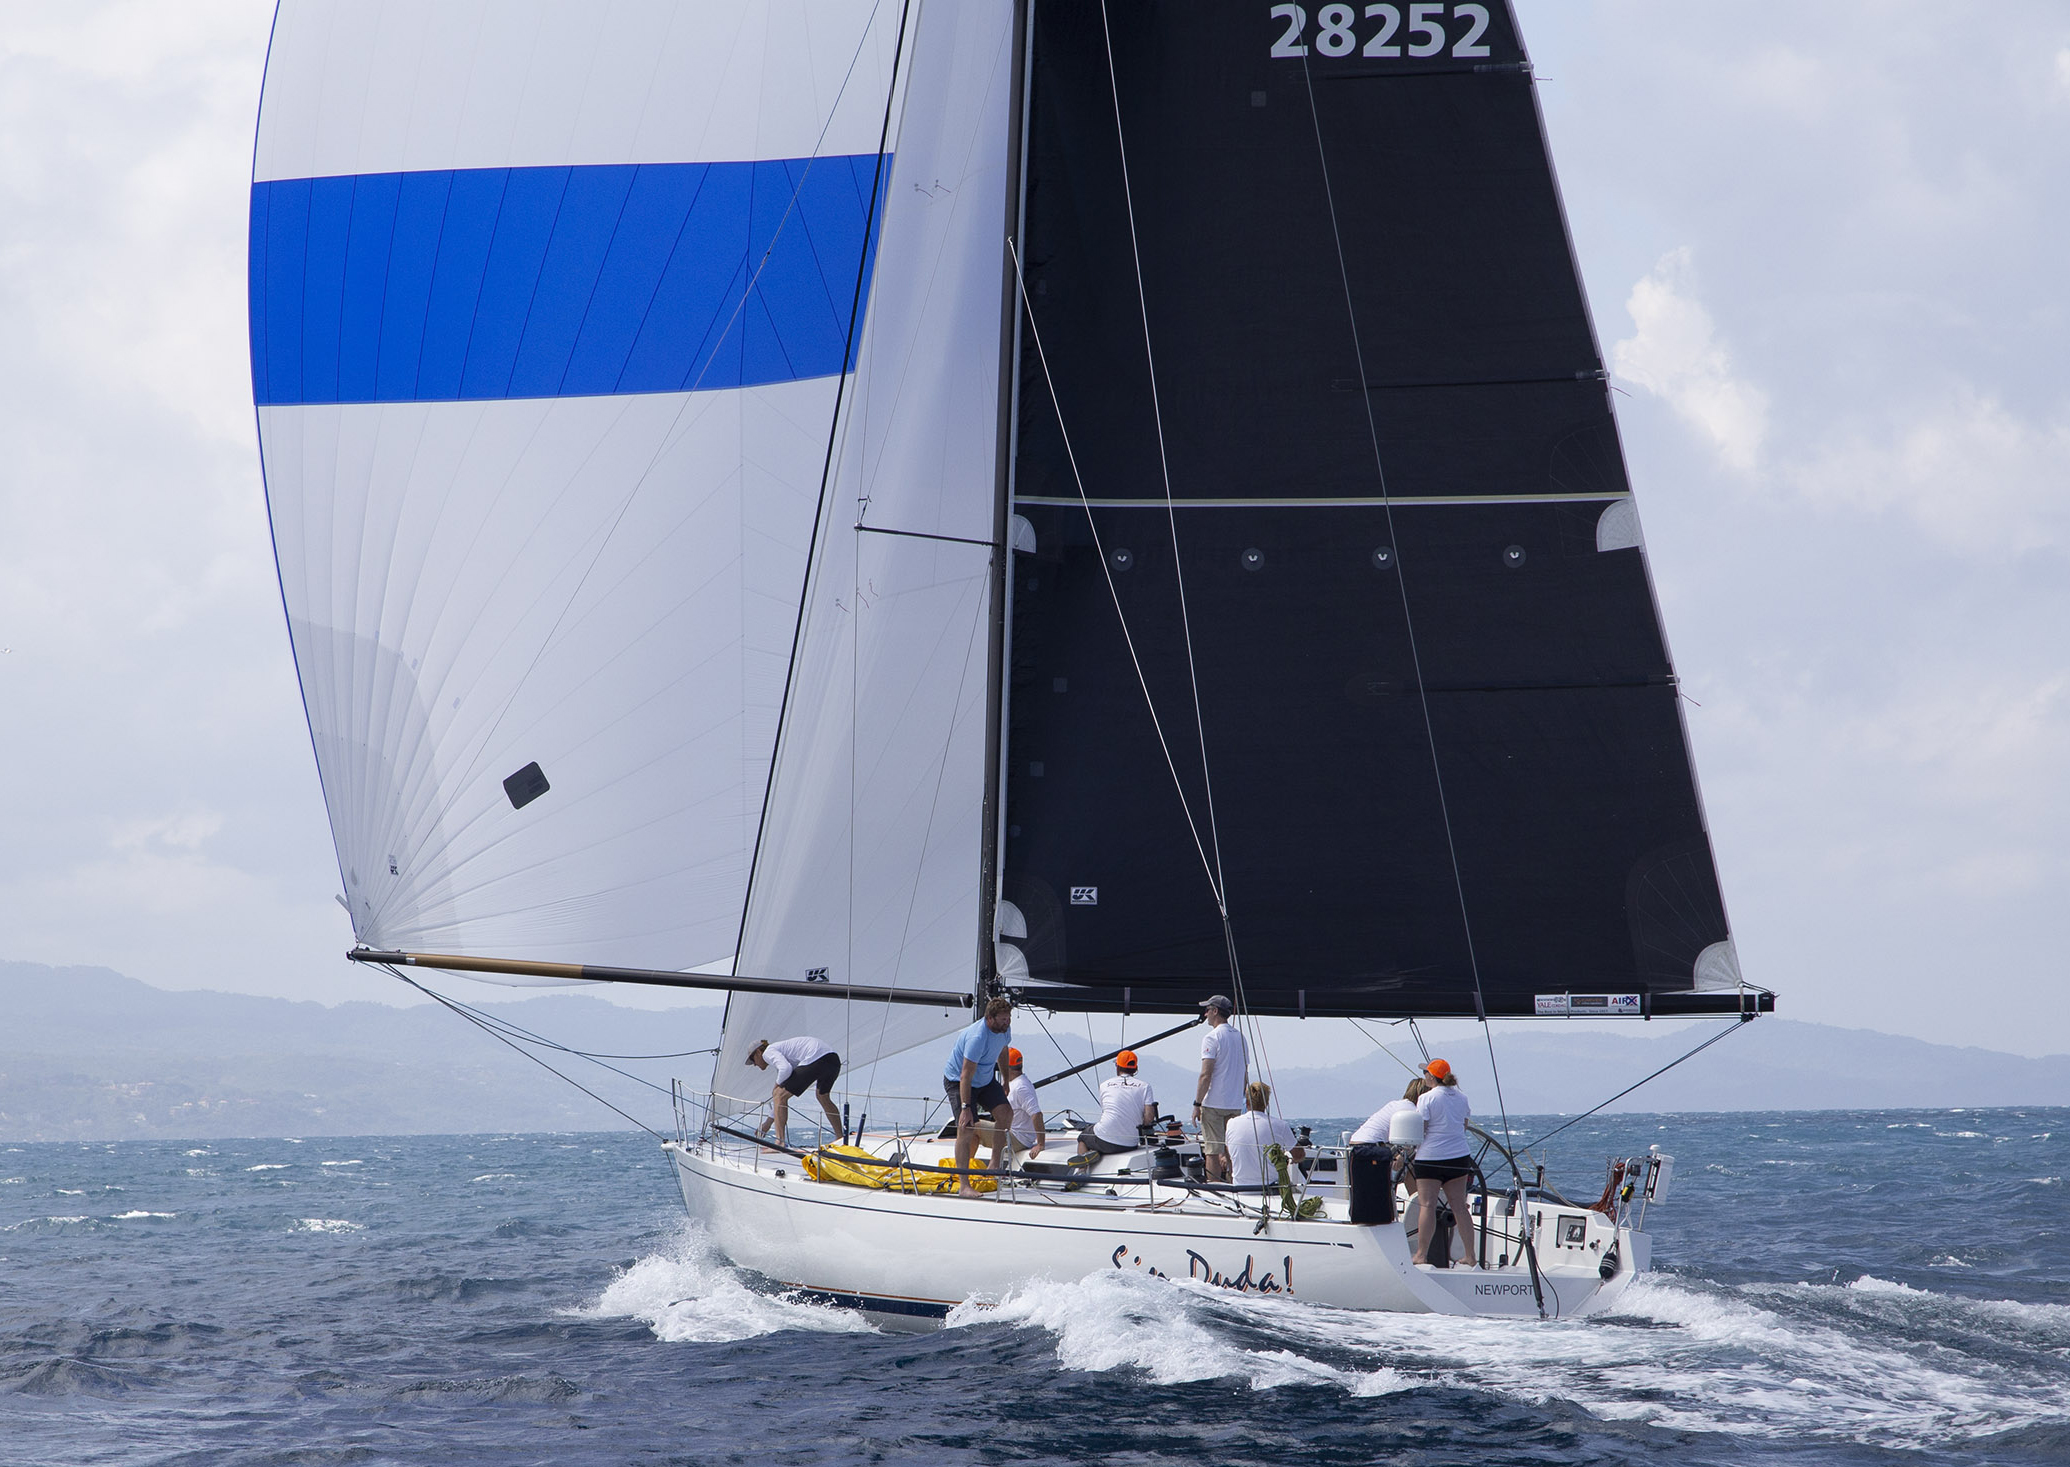 SIN DUDA! flying with her A4, spinnaker staysail and Uni-Titanium main. Photo courtesy The Pineapple Cup